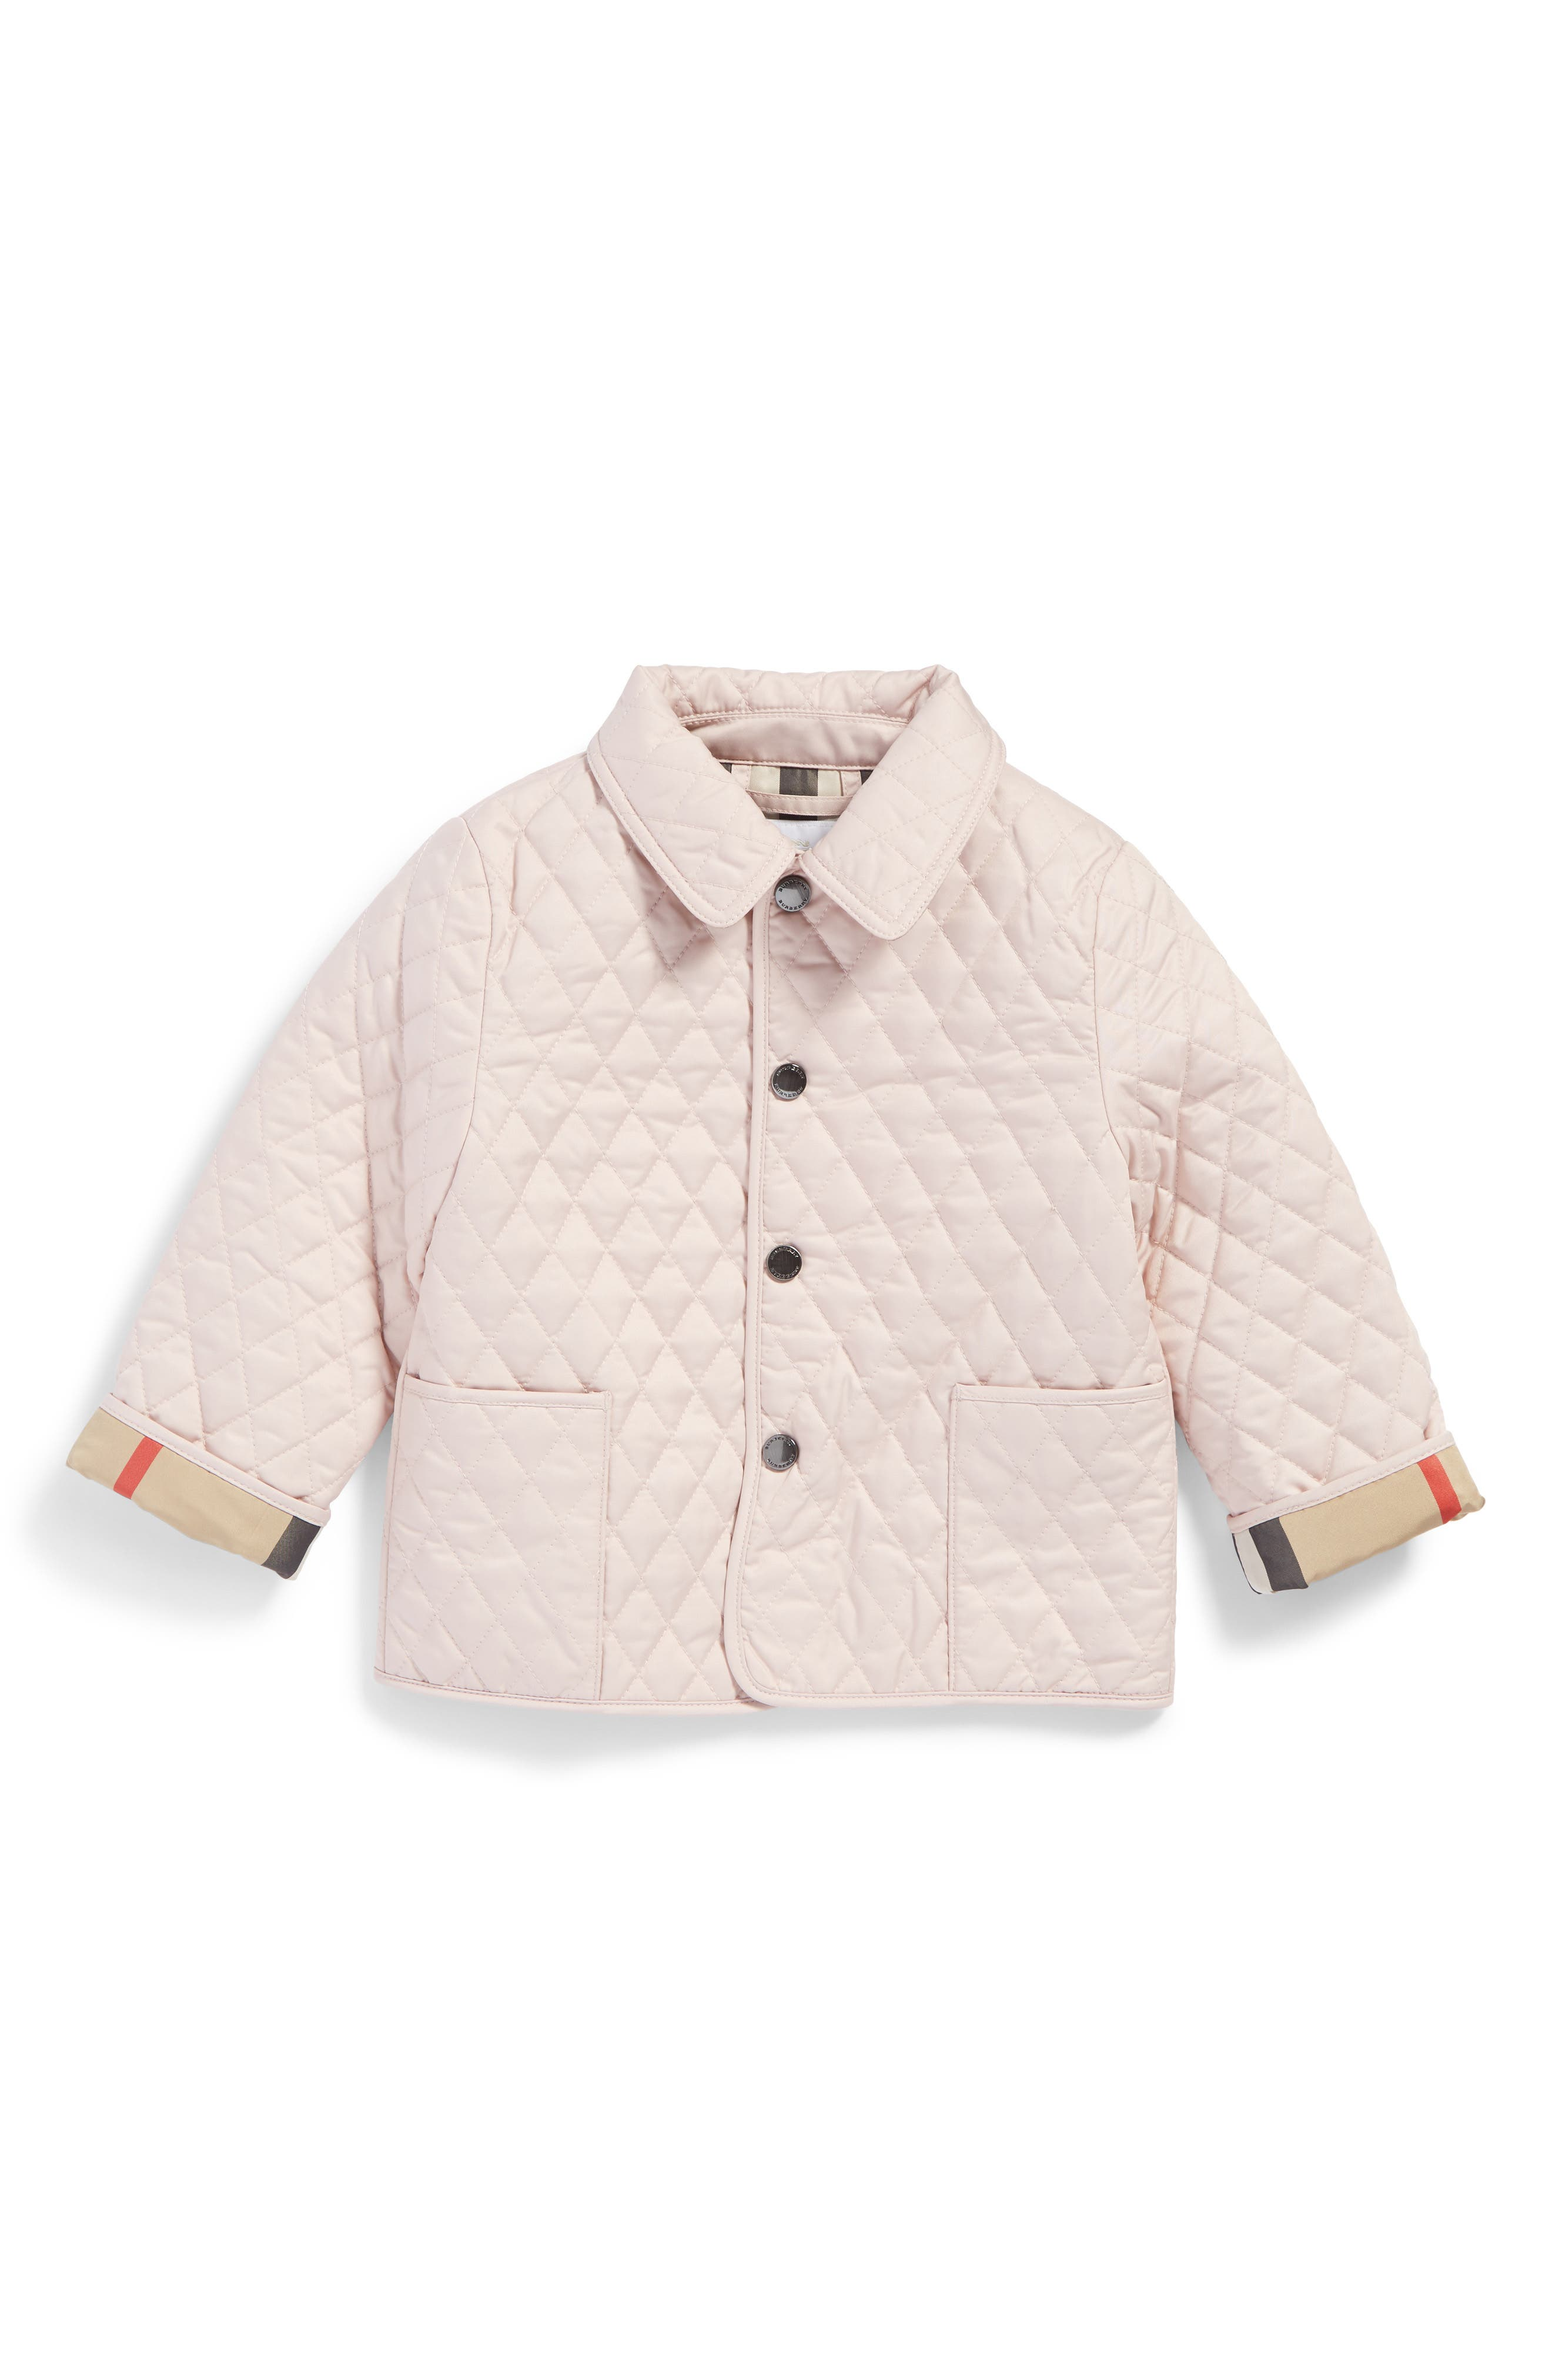 Alternate Image 1 Selected - Burberry Colin Quilted Jacket (Baby Girls)